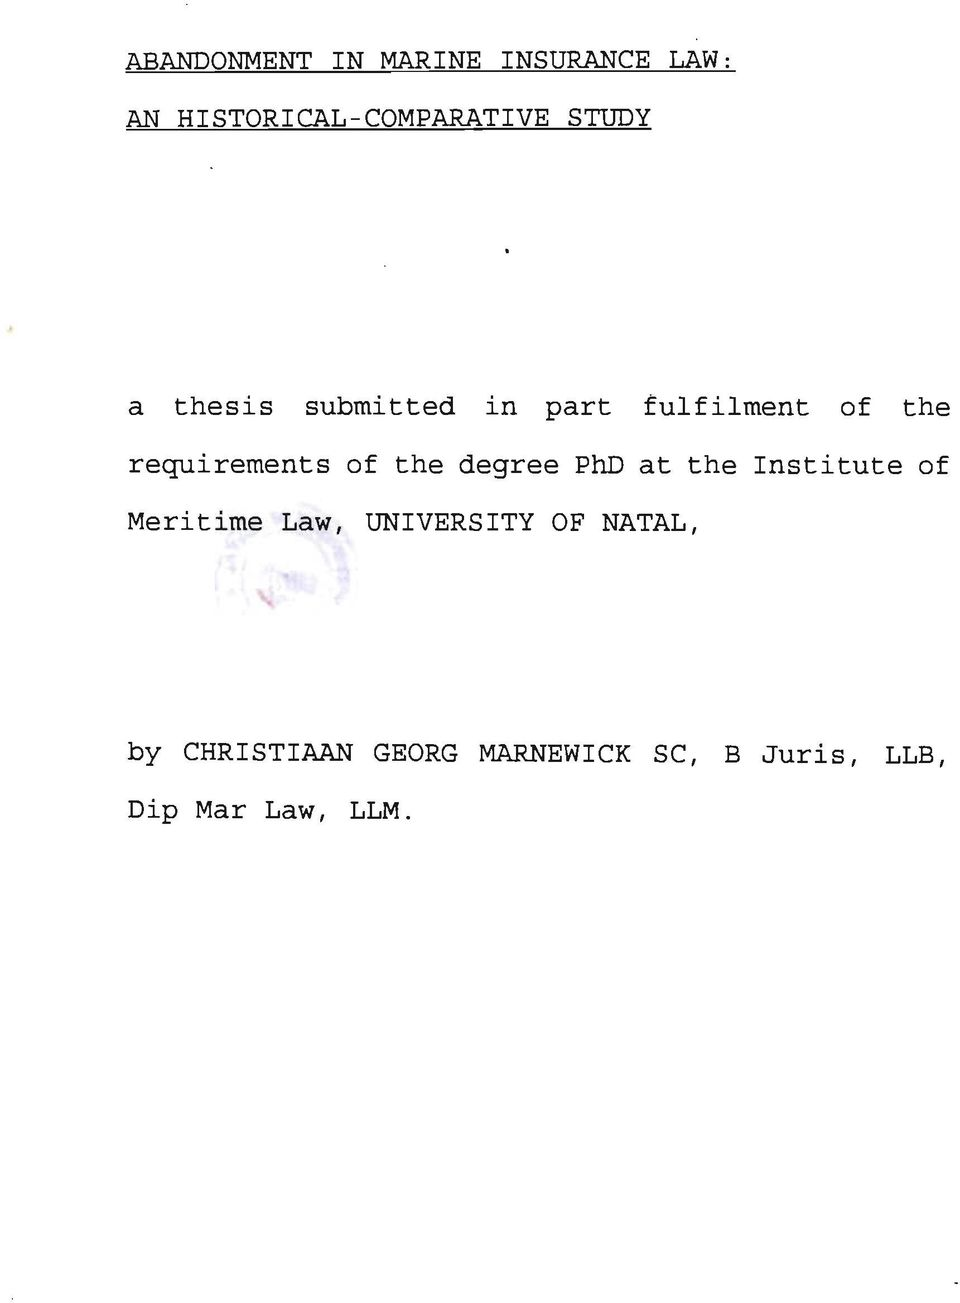 thesis on insurance law Mltannan, revised by : banking law and practice, wadhwa & company, nagpur  salient features of deposit insurance 97 nomination 98 settlement of claims 98.